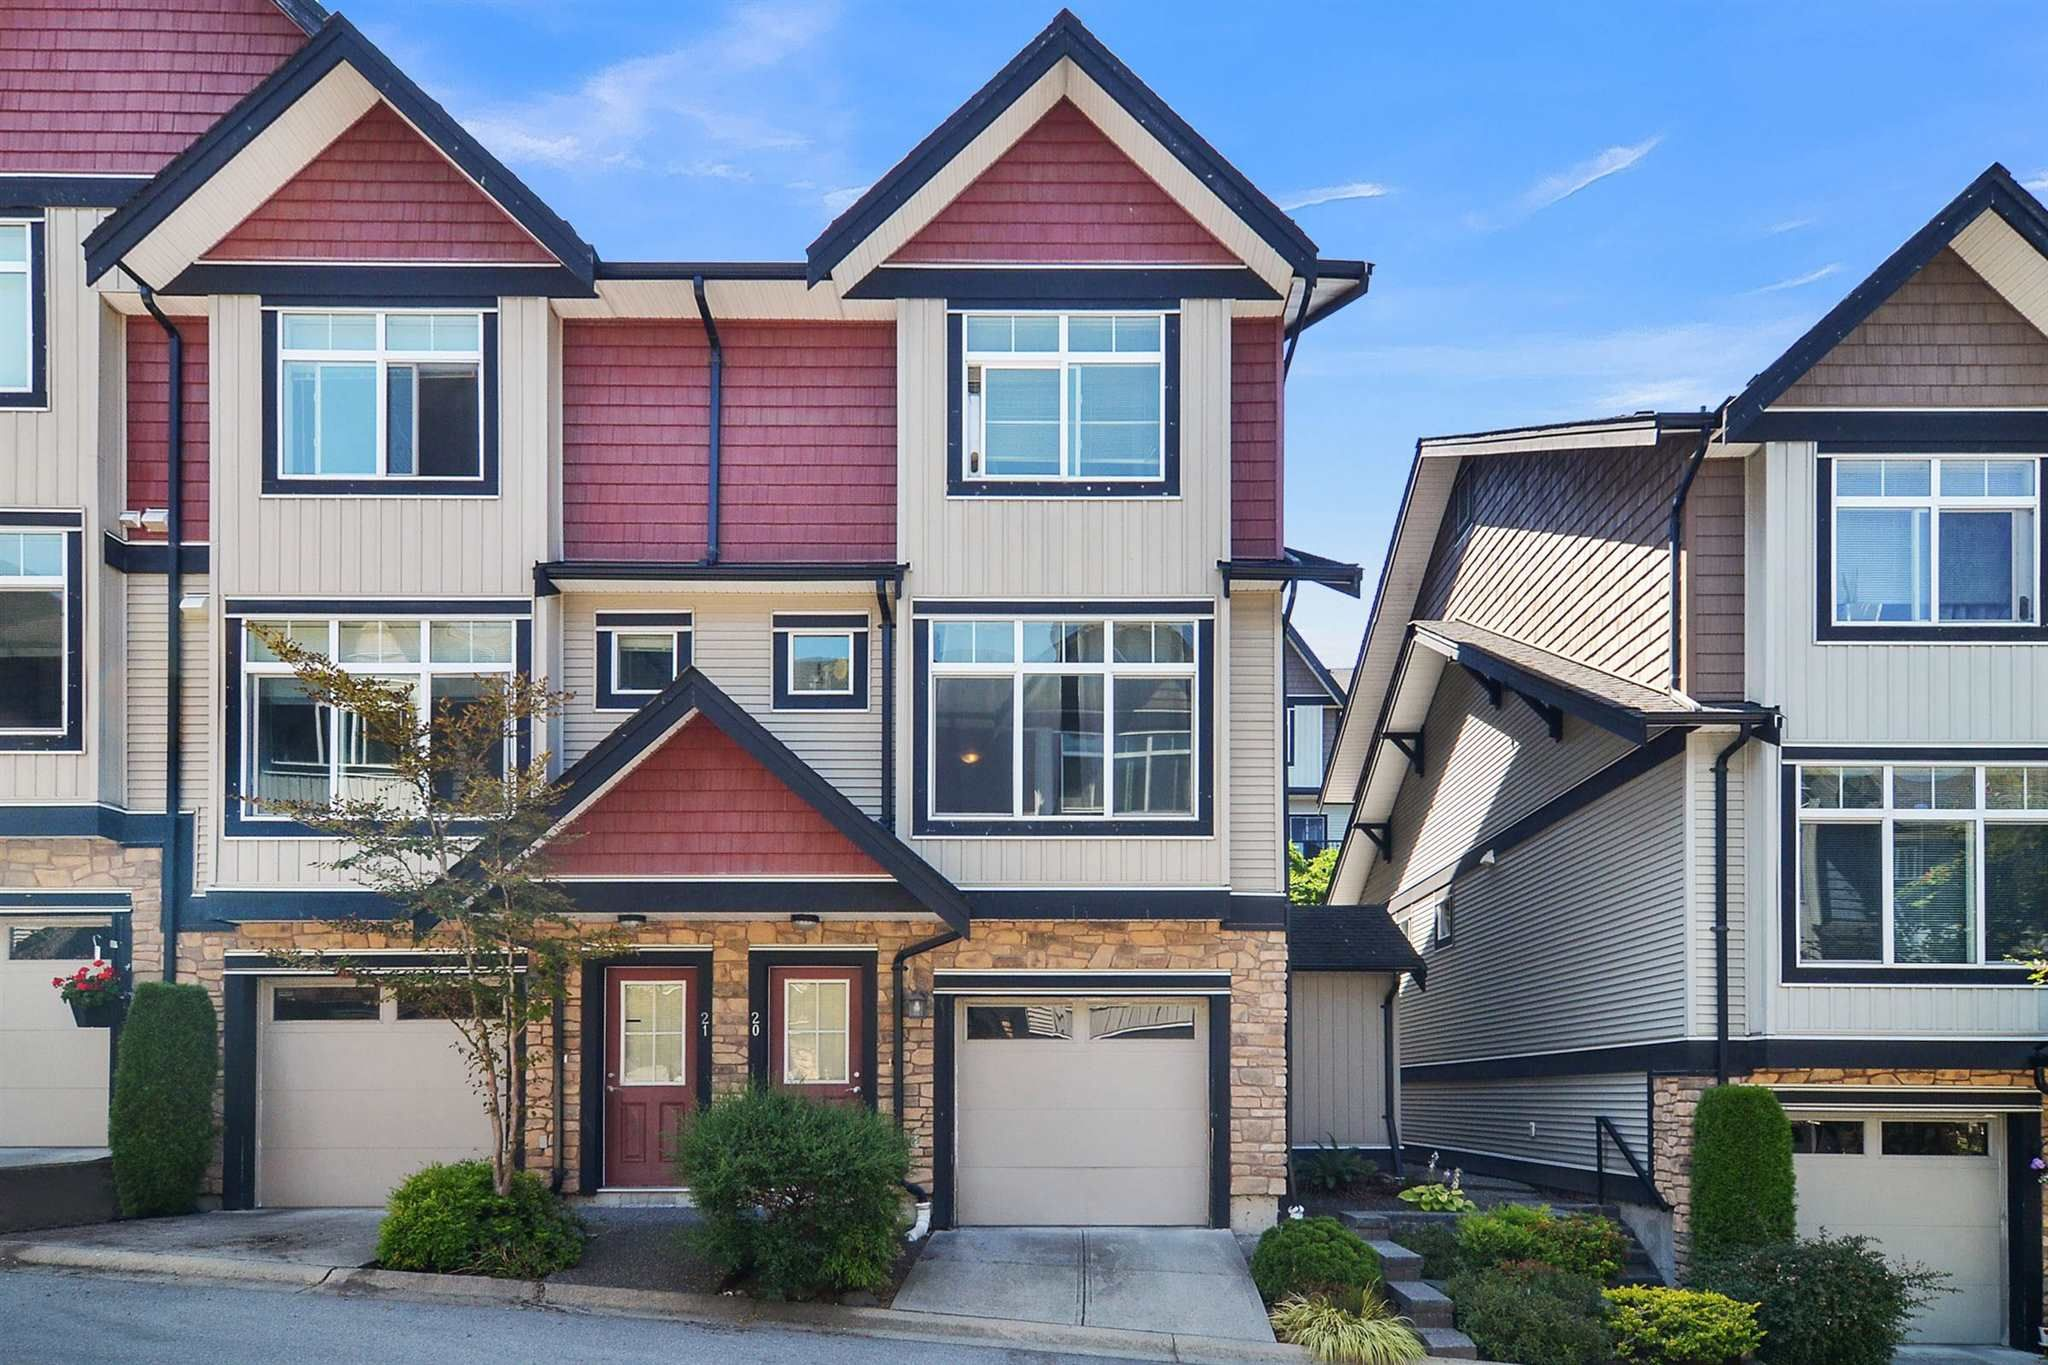 """Main Photo: 20 6299 144 Street in Surrey: Sullivan Station Townhouse for sale in """"ALTURA"""" : MLS®# R2604019"""